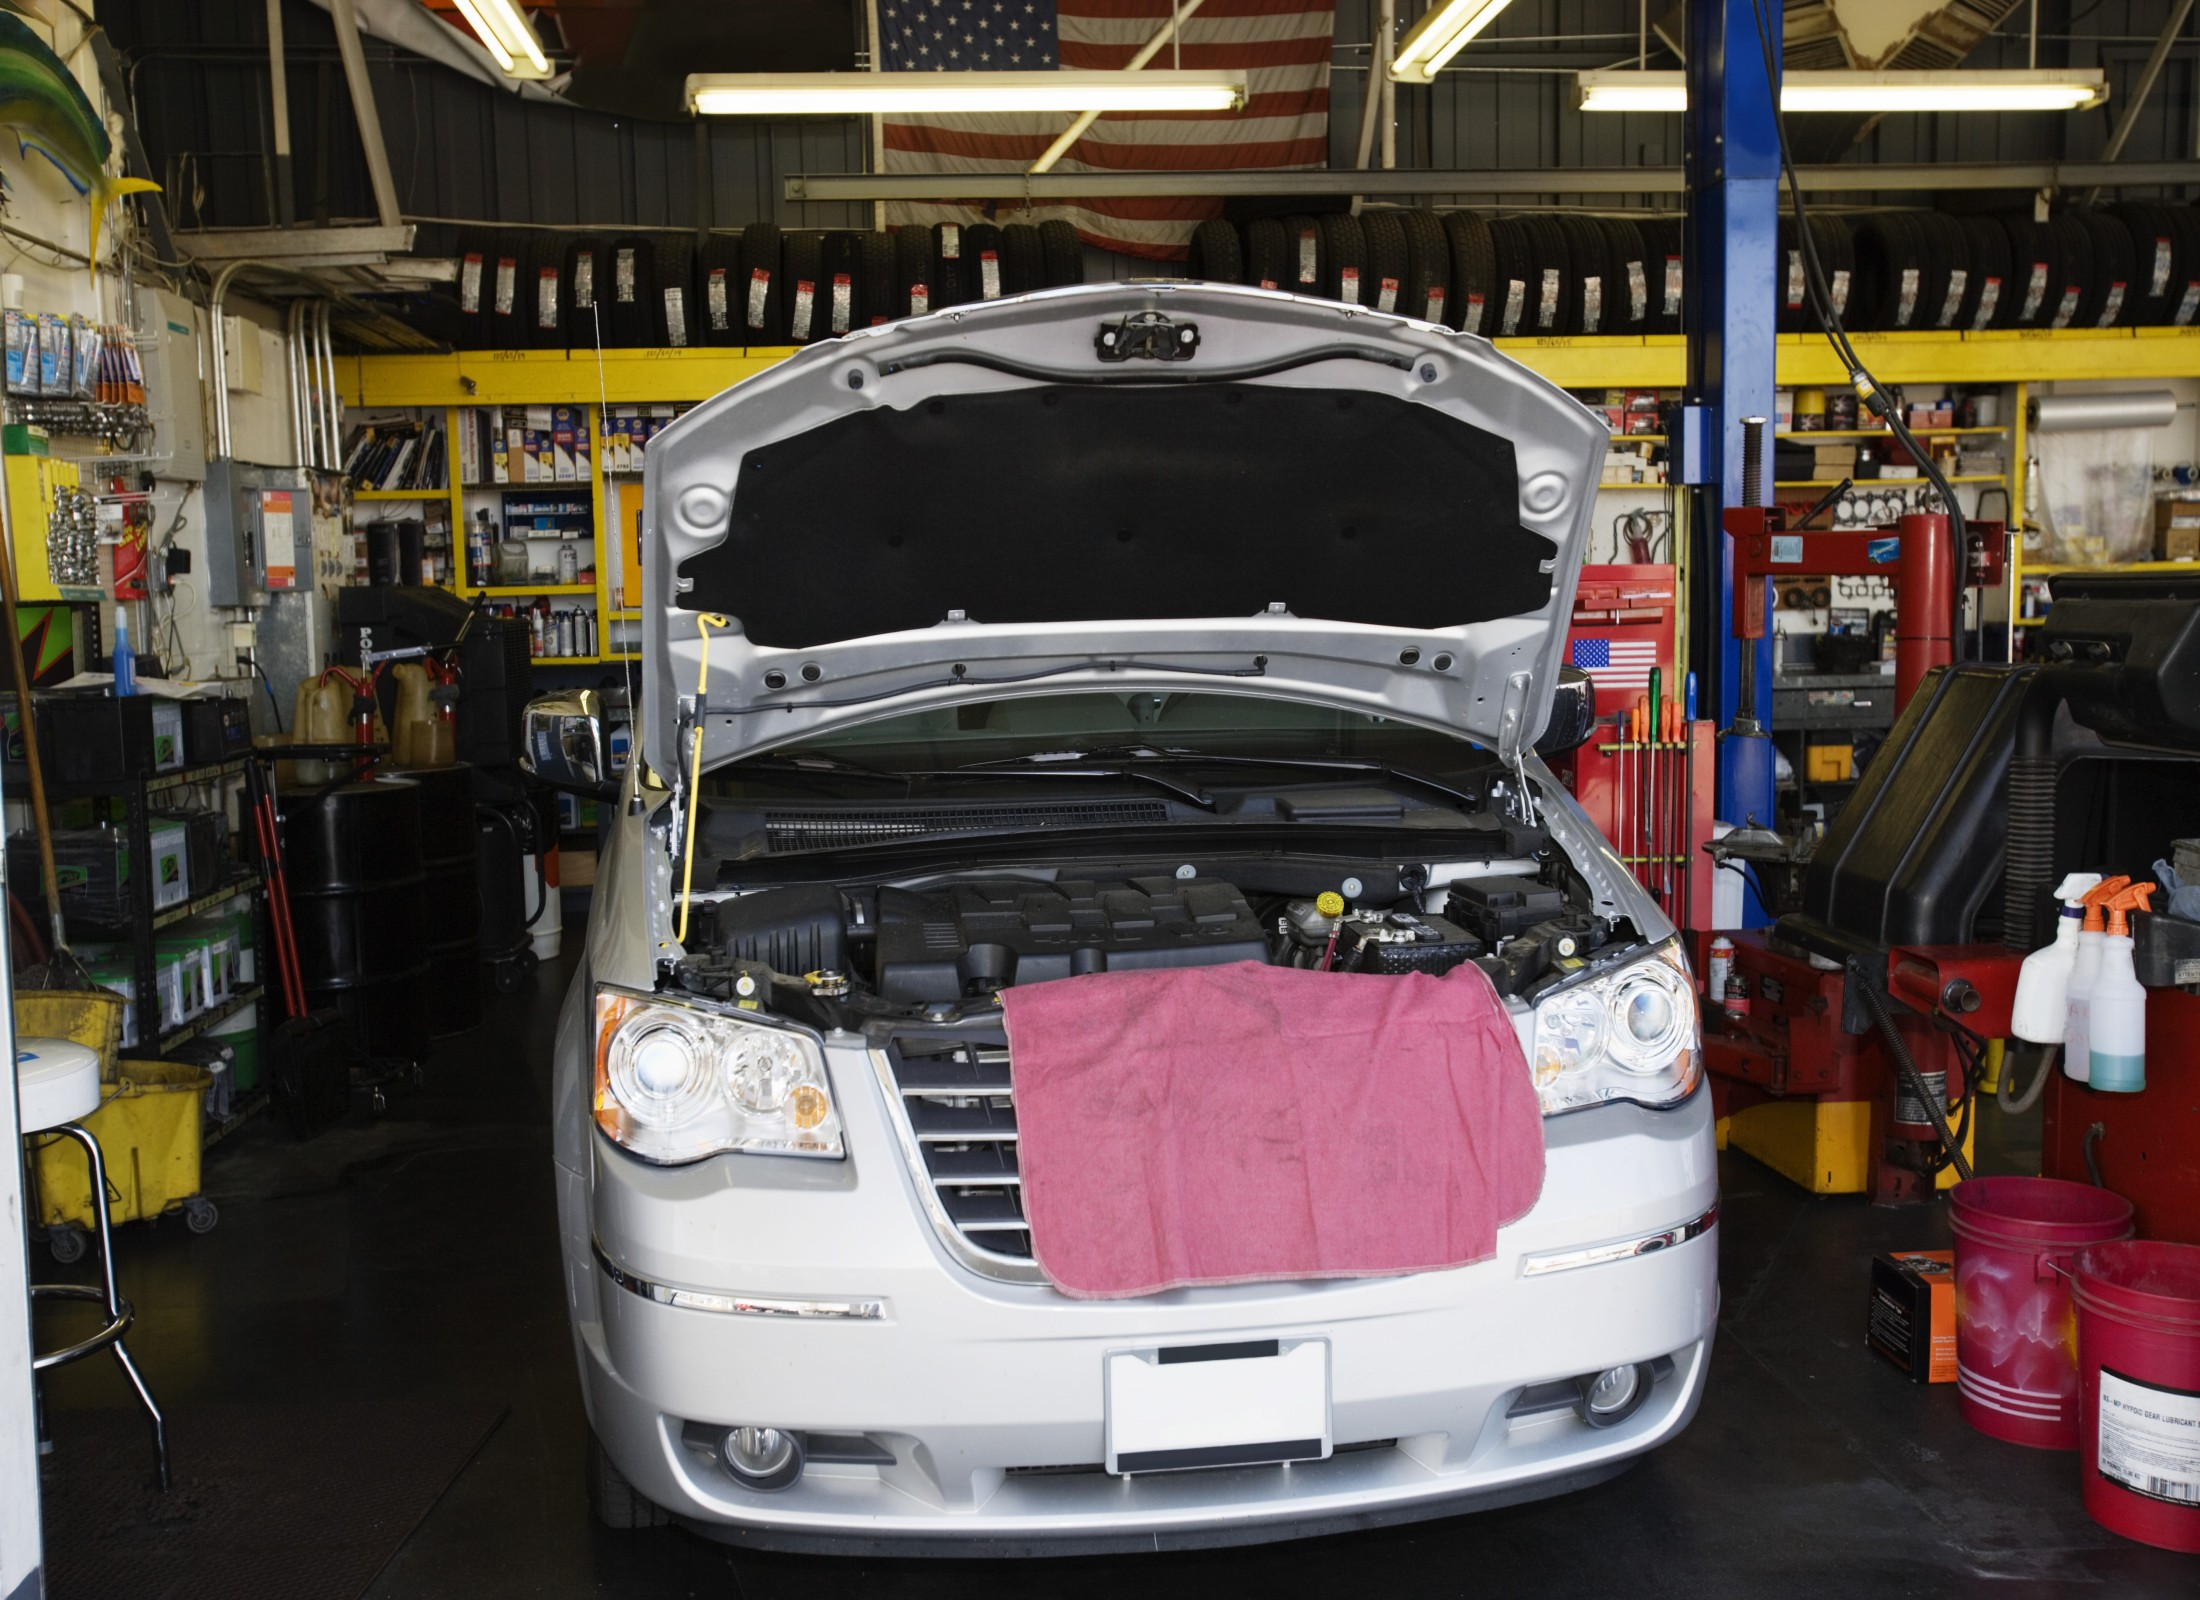 Fundamental guide to automotive repairing and troubleshooting